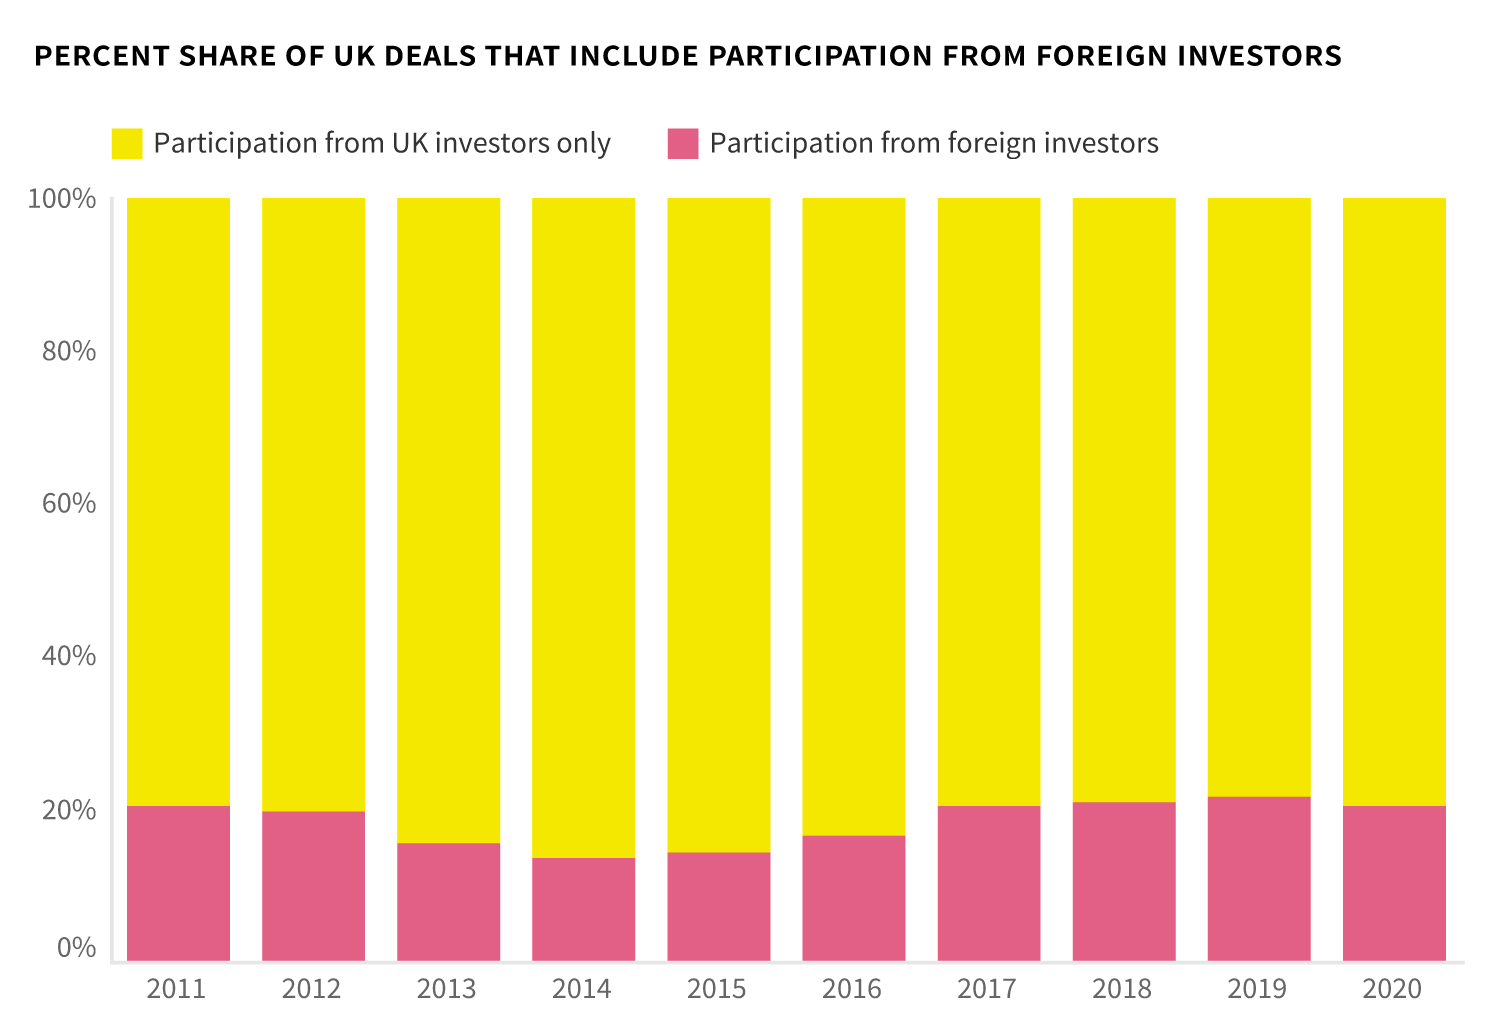 Proportion of UK deals that involve foreign investment